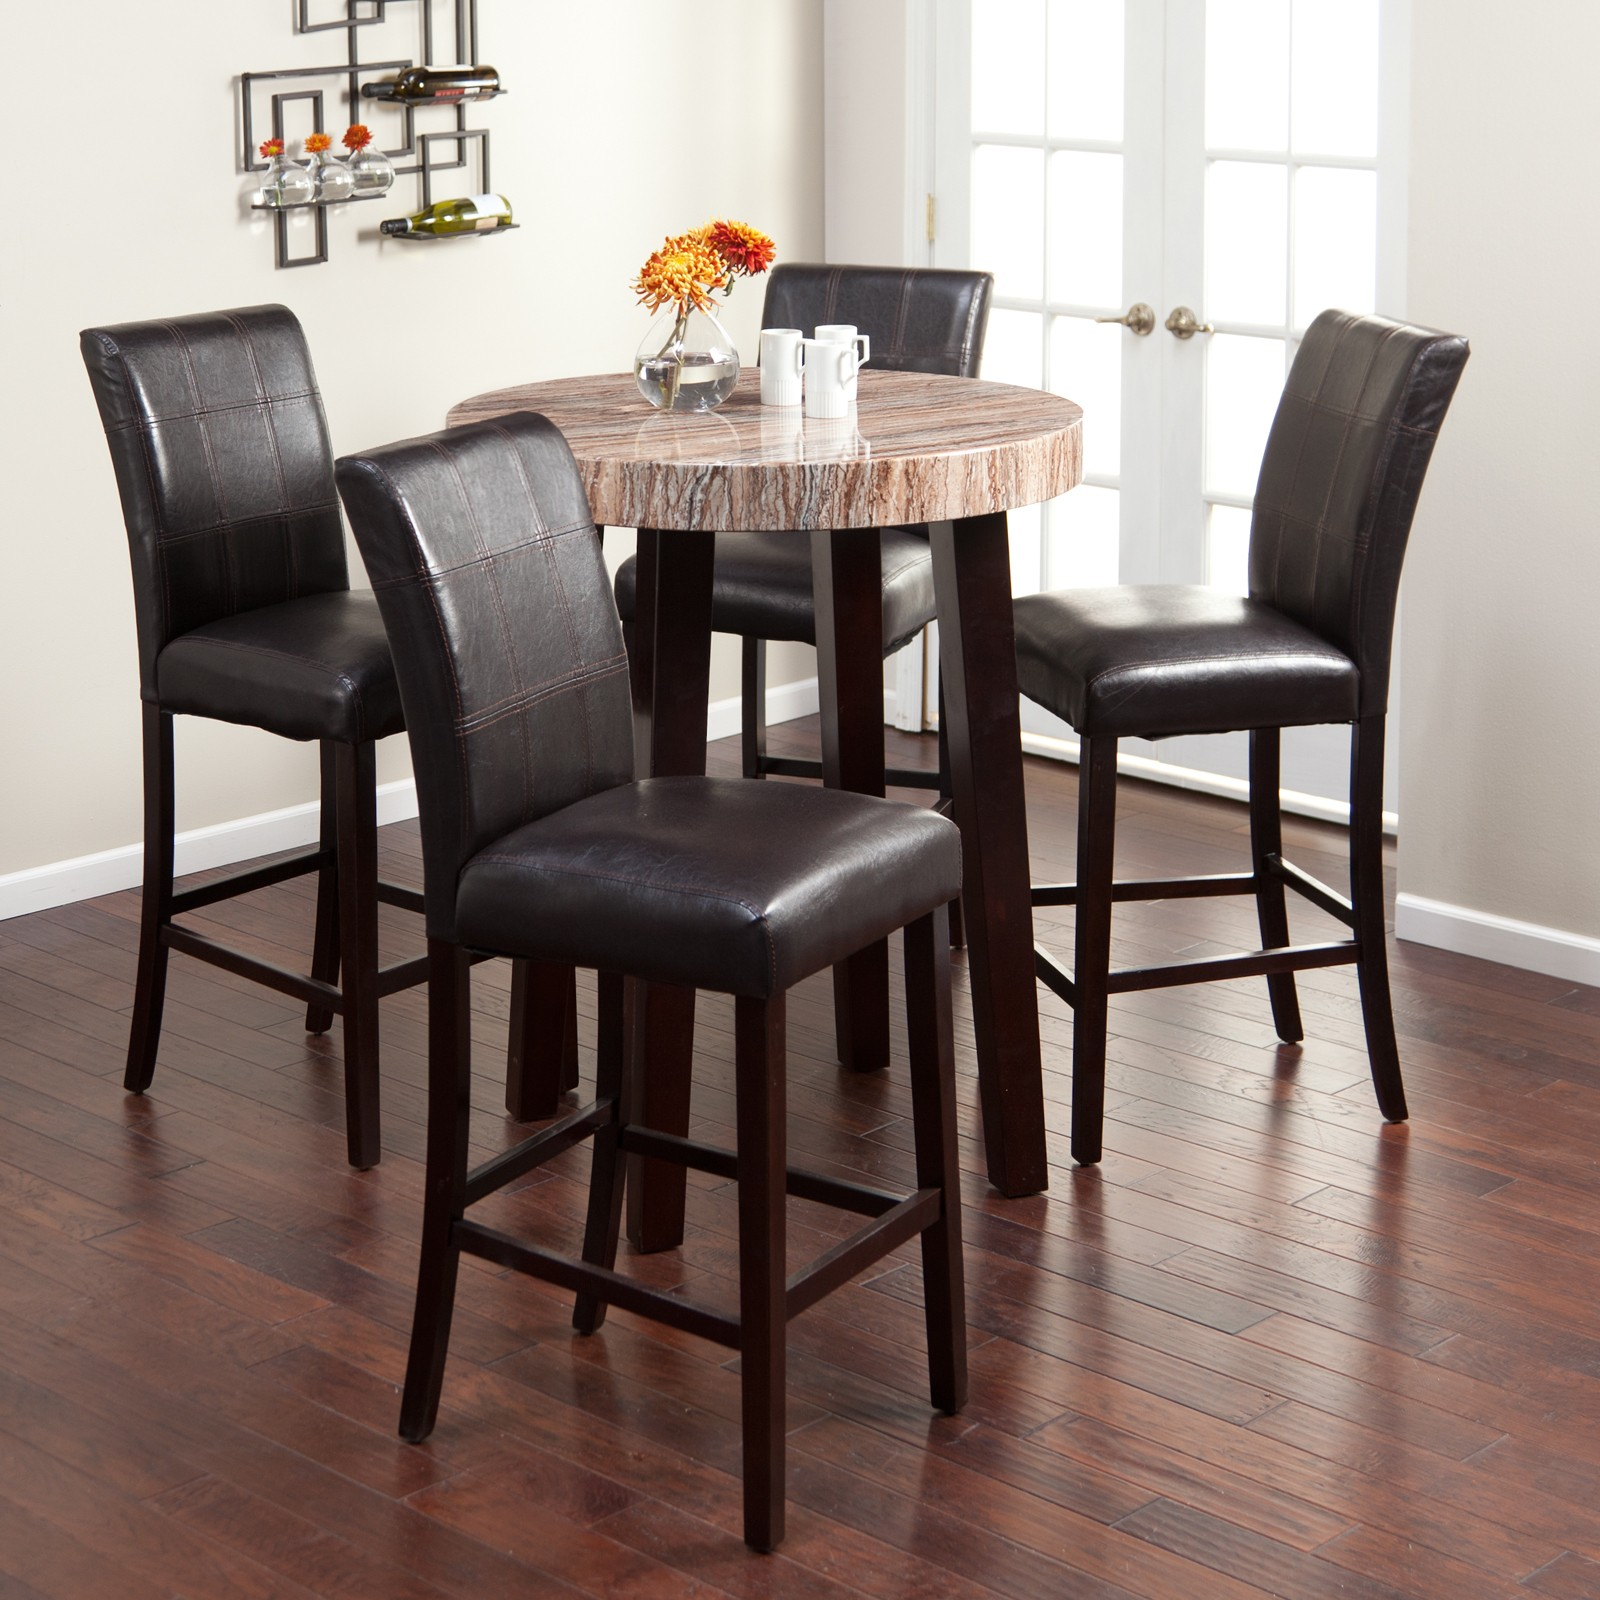 Black high top kitchen table & High Top Pub Table Sets - Foter